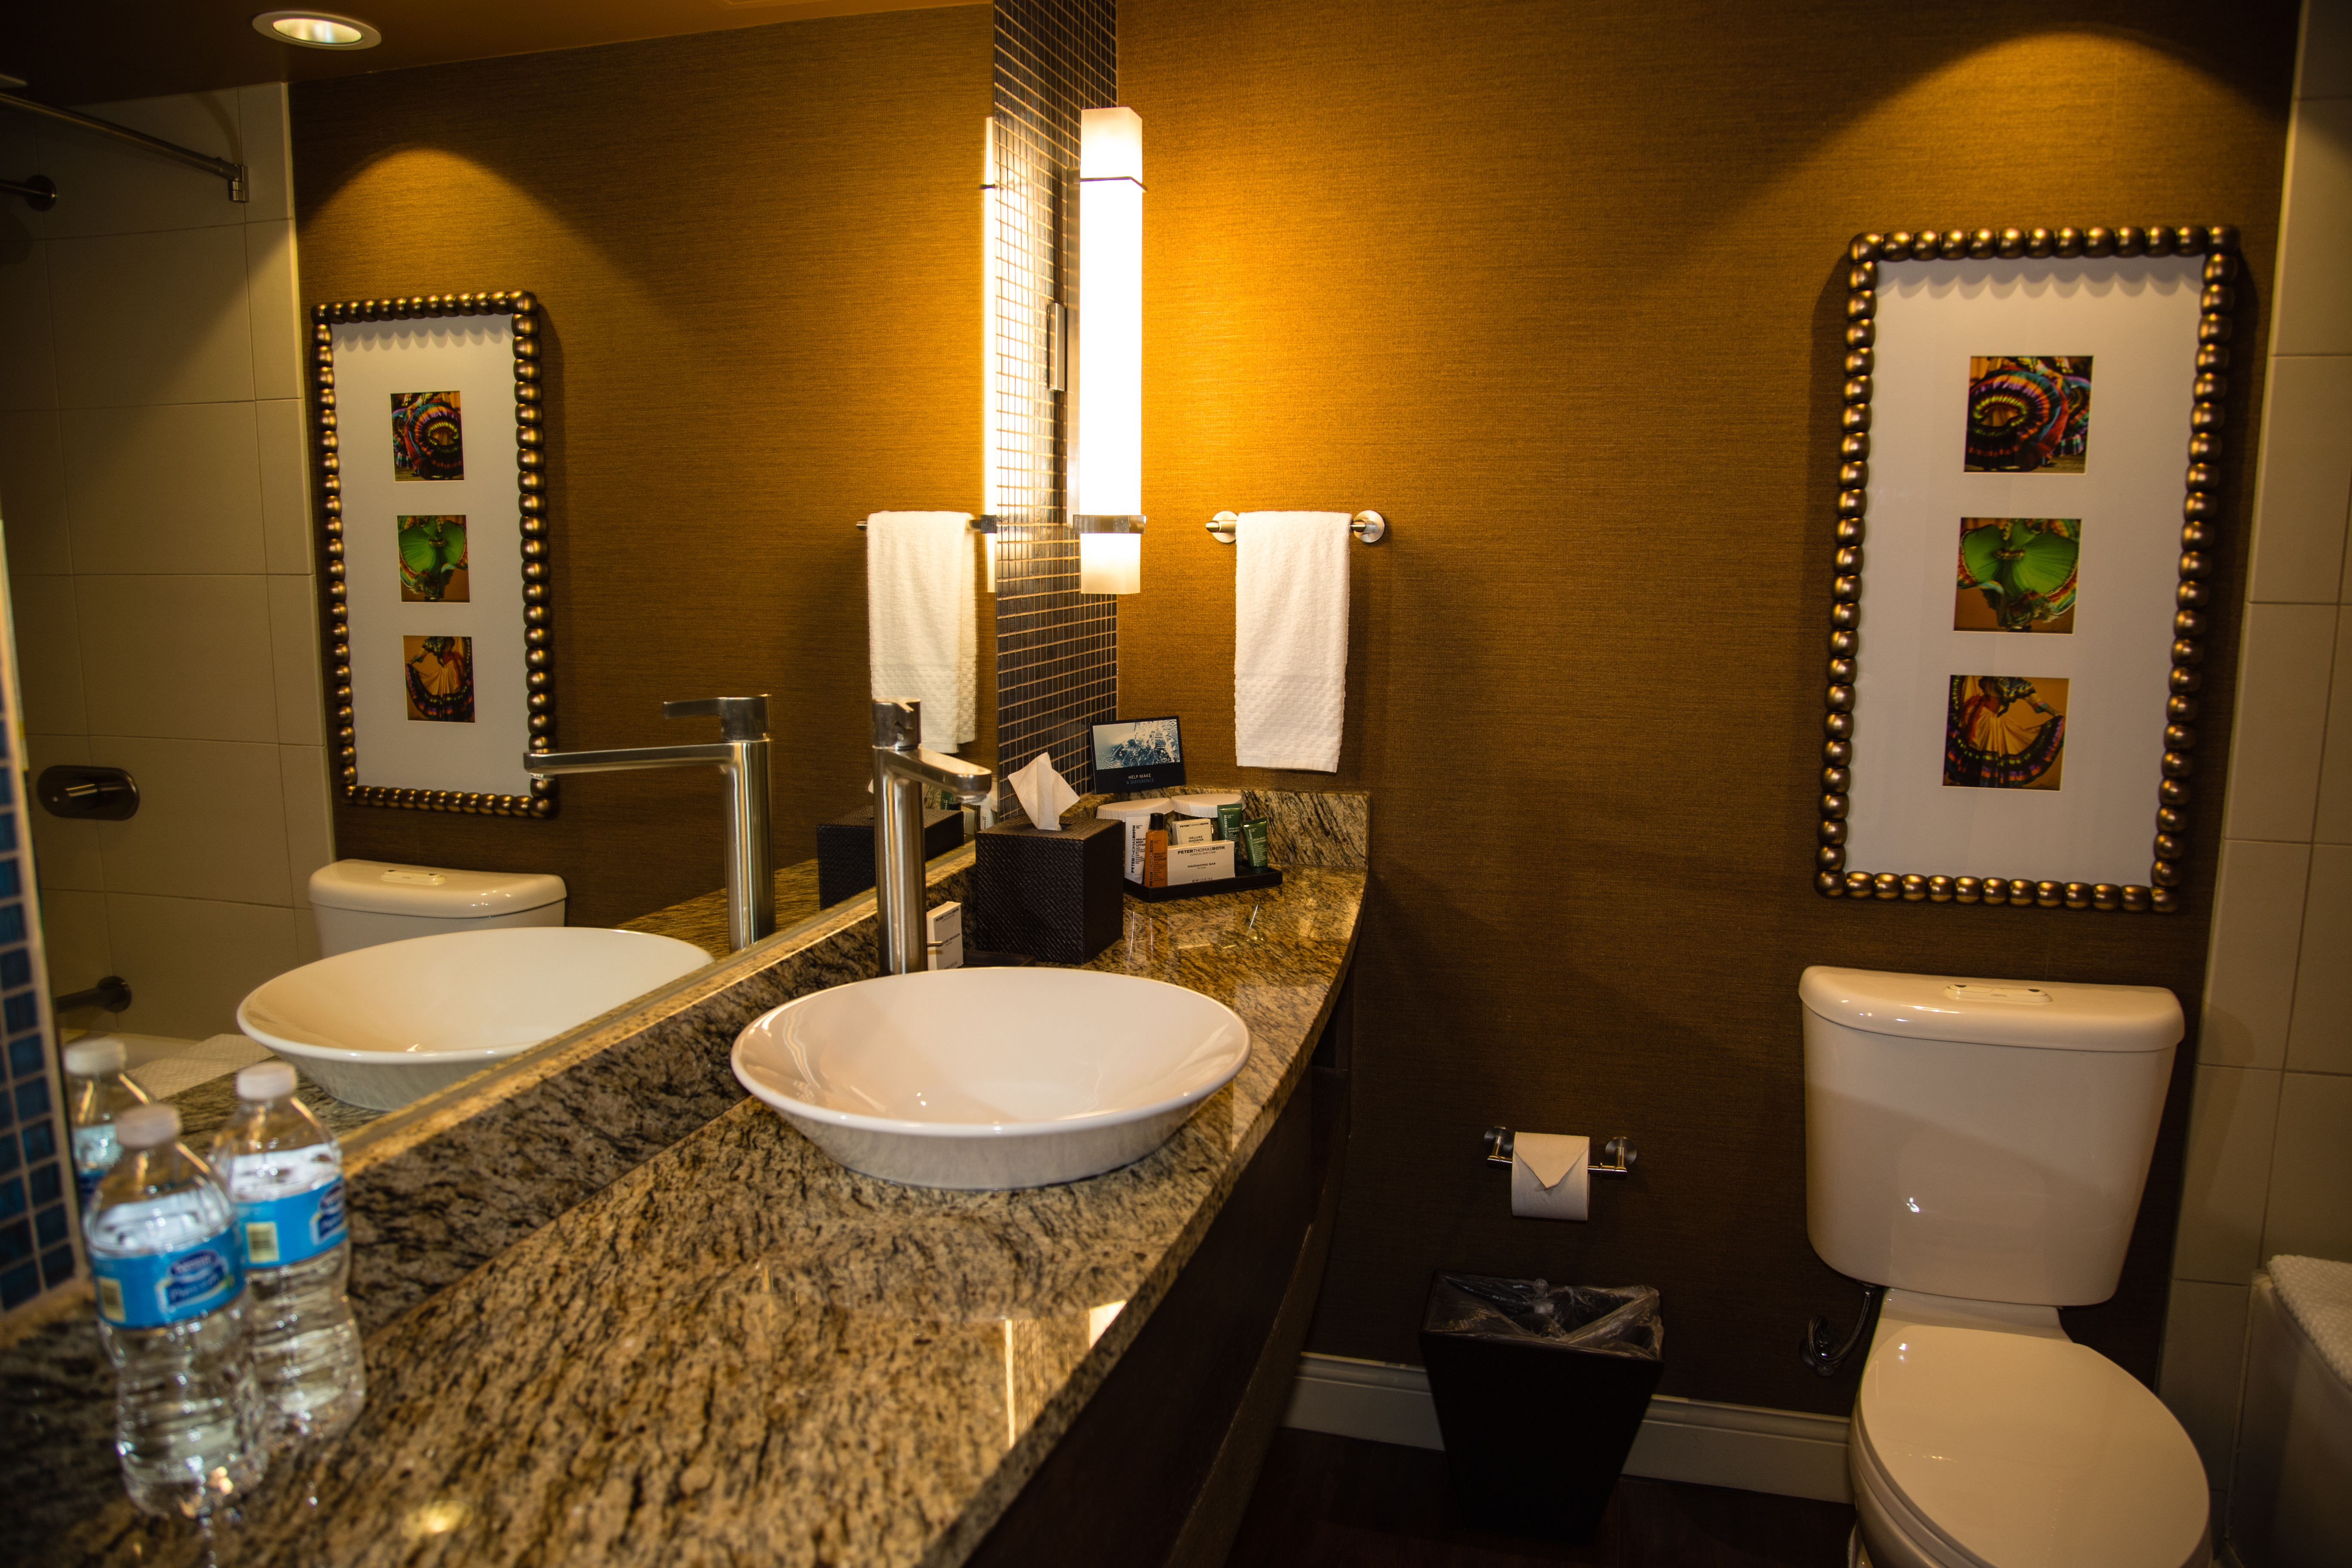 Bathroom Mirrors In San Antonio With Cool Images